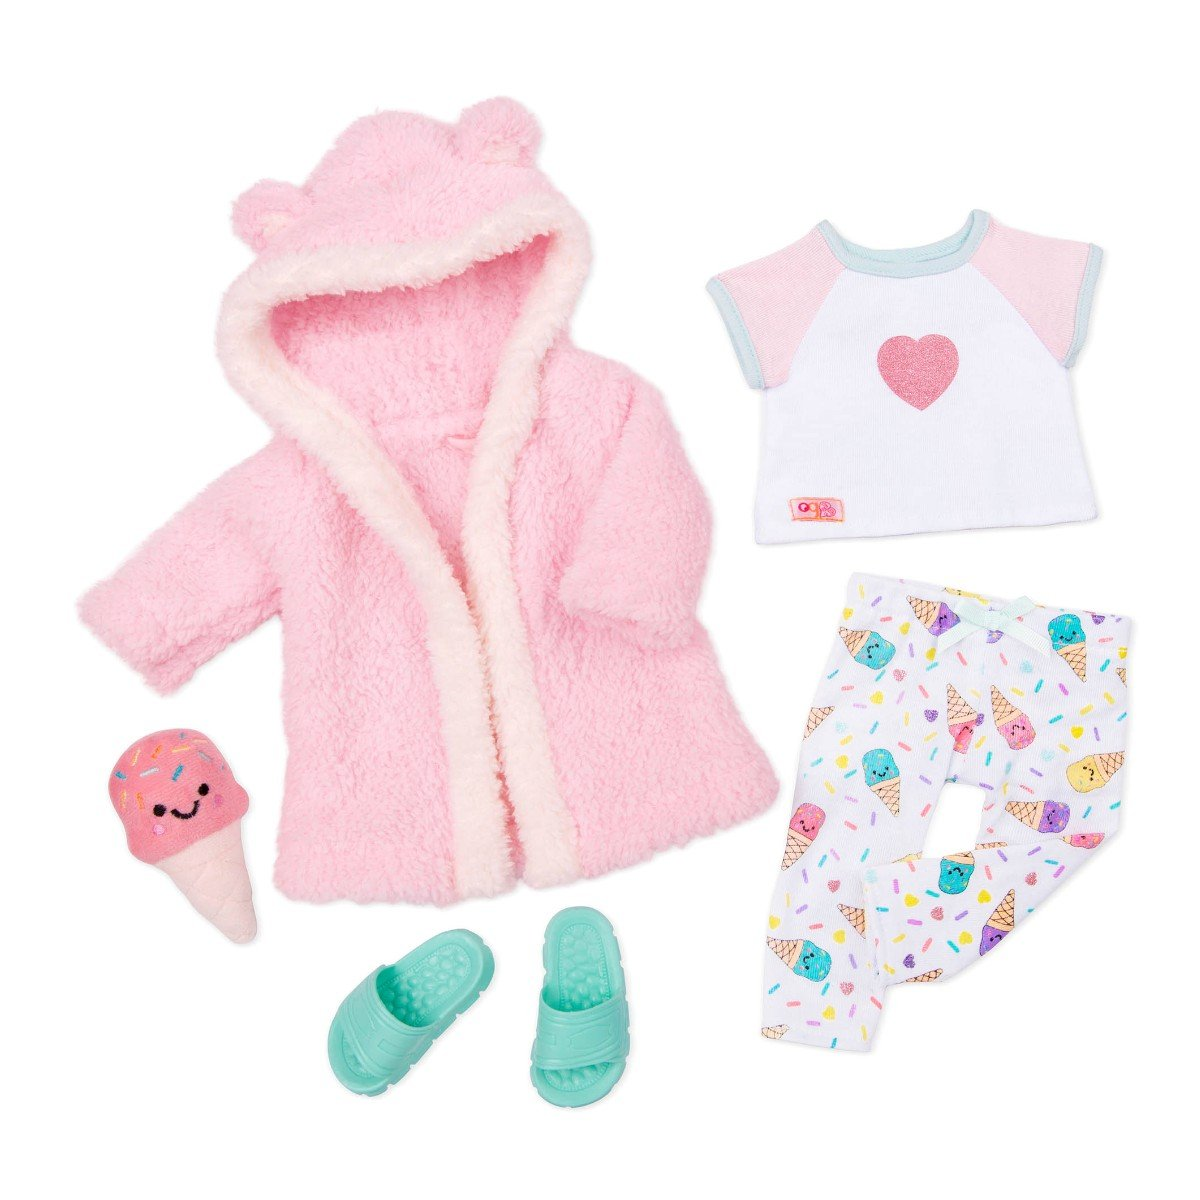 Our Generation - Dolls clothing - Deluxe Ice Cream Dreams outfit (730350)